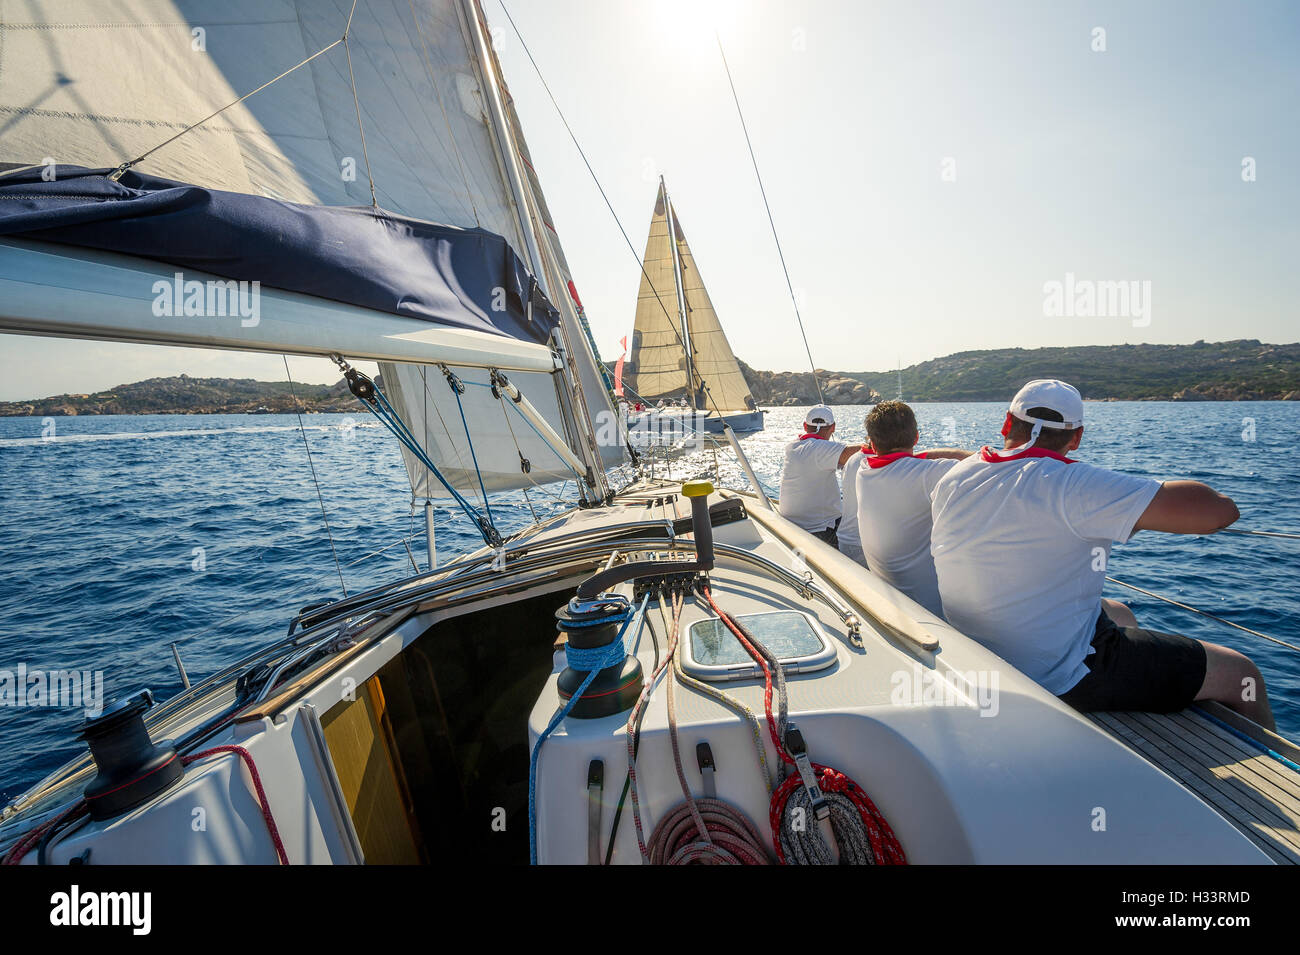 Onboard view of racing sailing yacht with a crew sitting on the starboard side - Stock Image